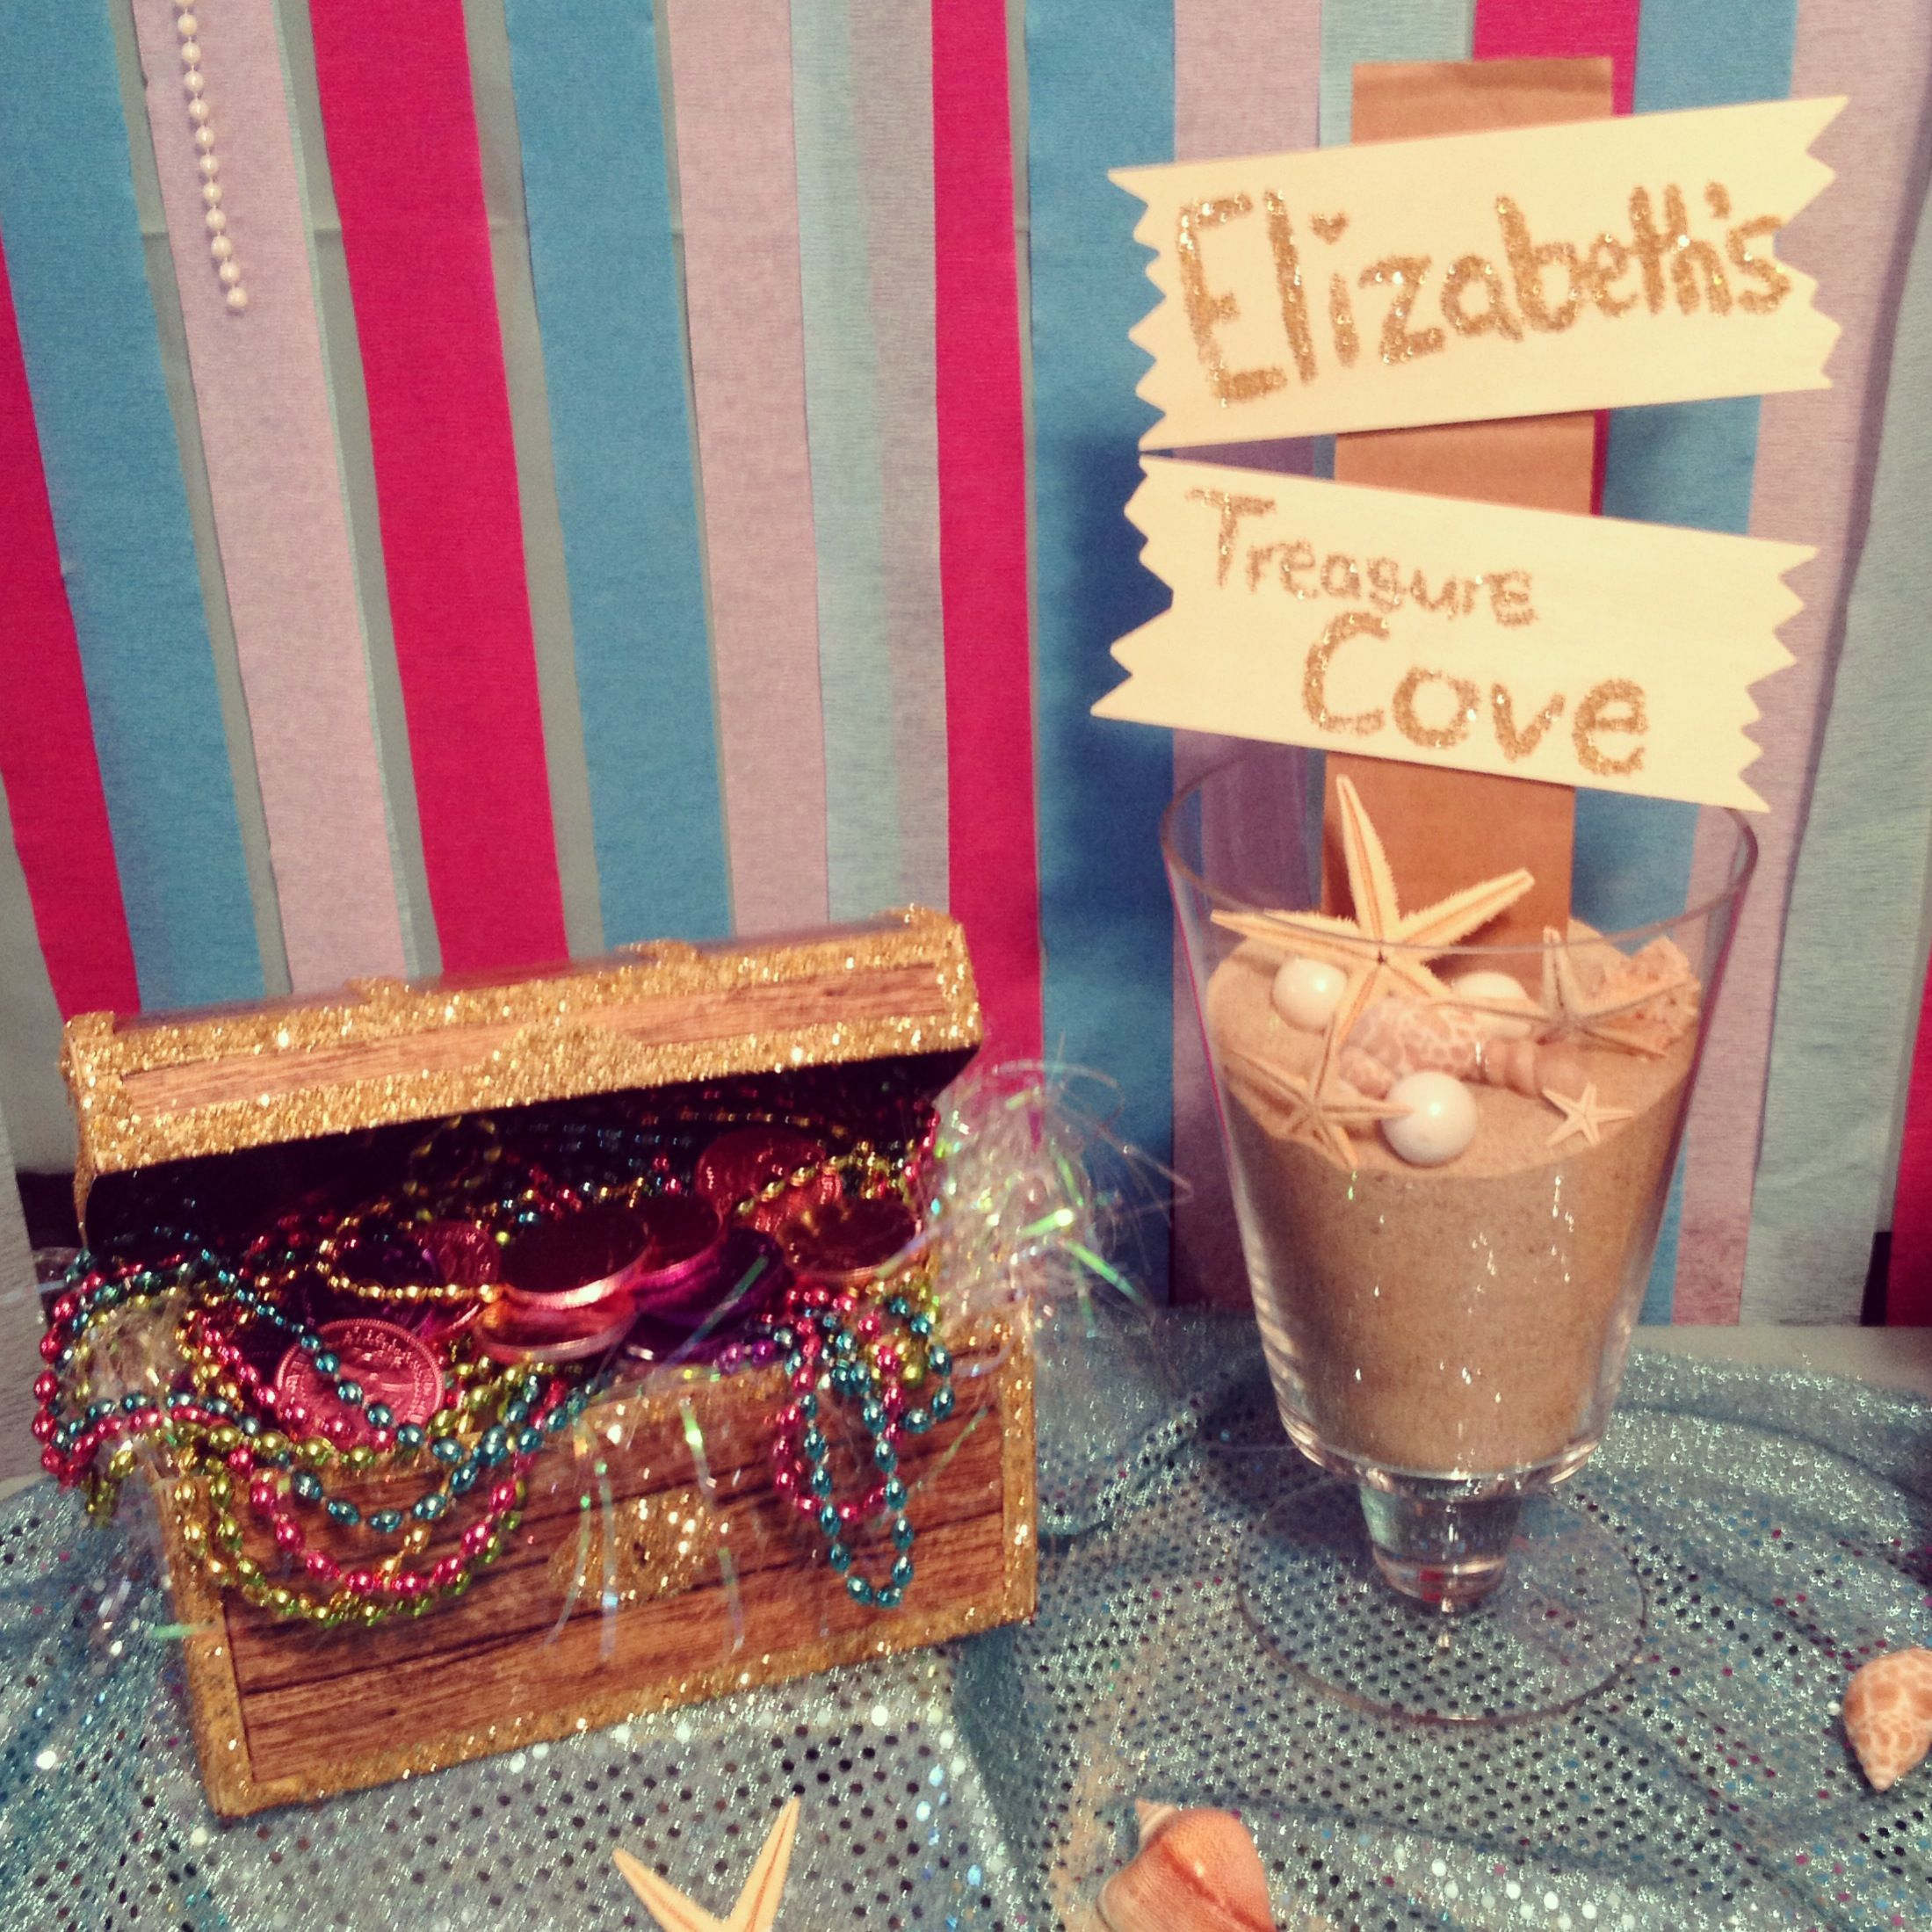 Treasure chest and custom sign for the dessert table